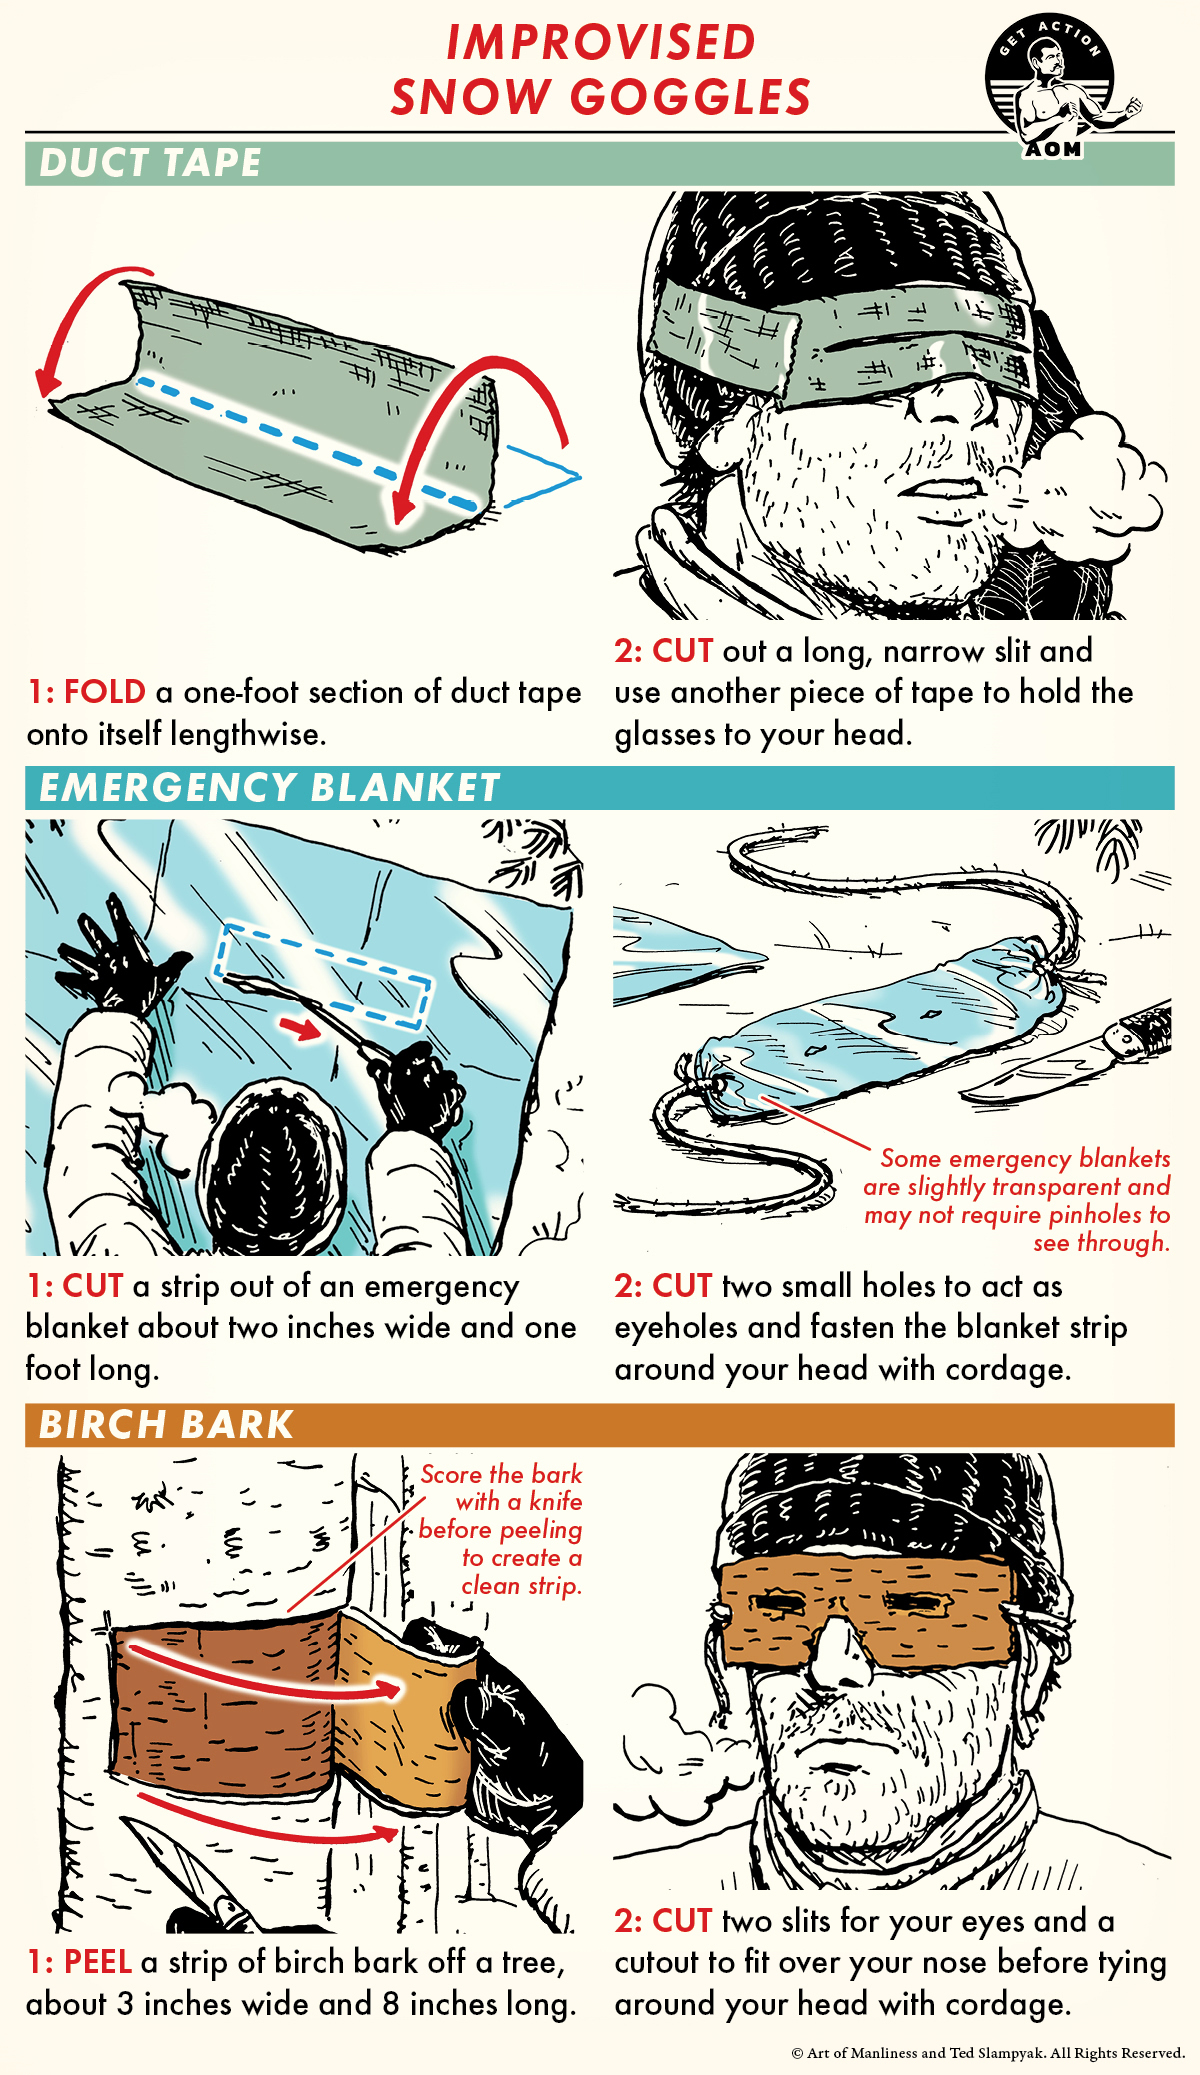 Improvised Snow Goggles comic guide.